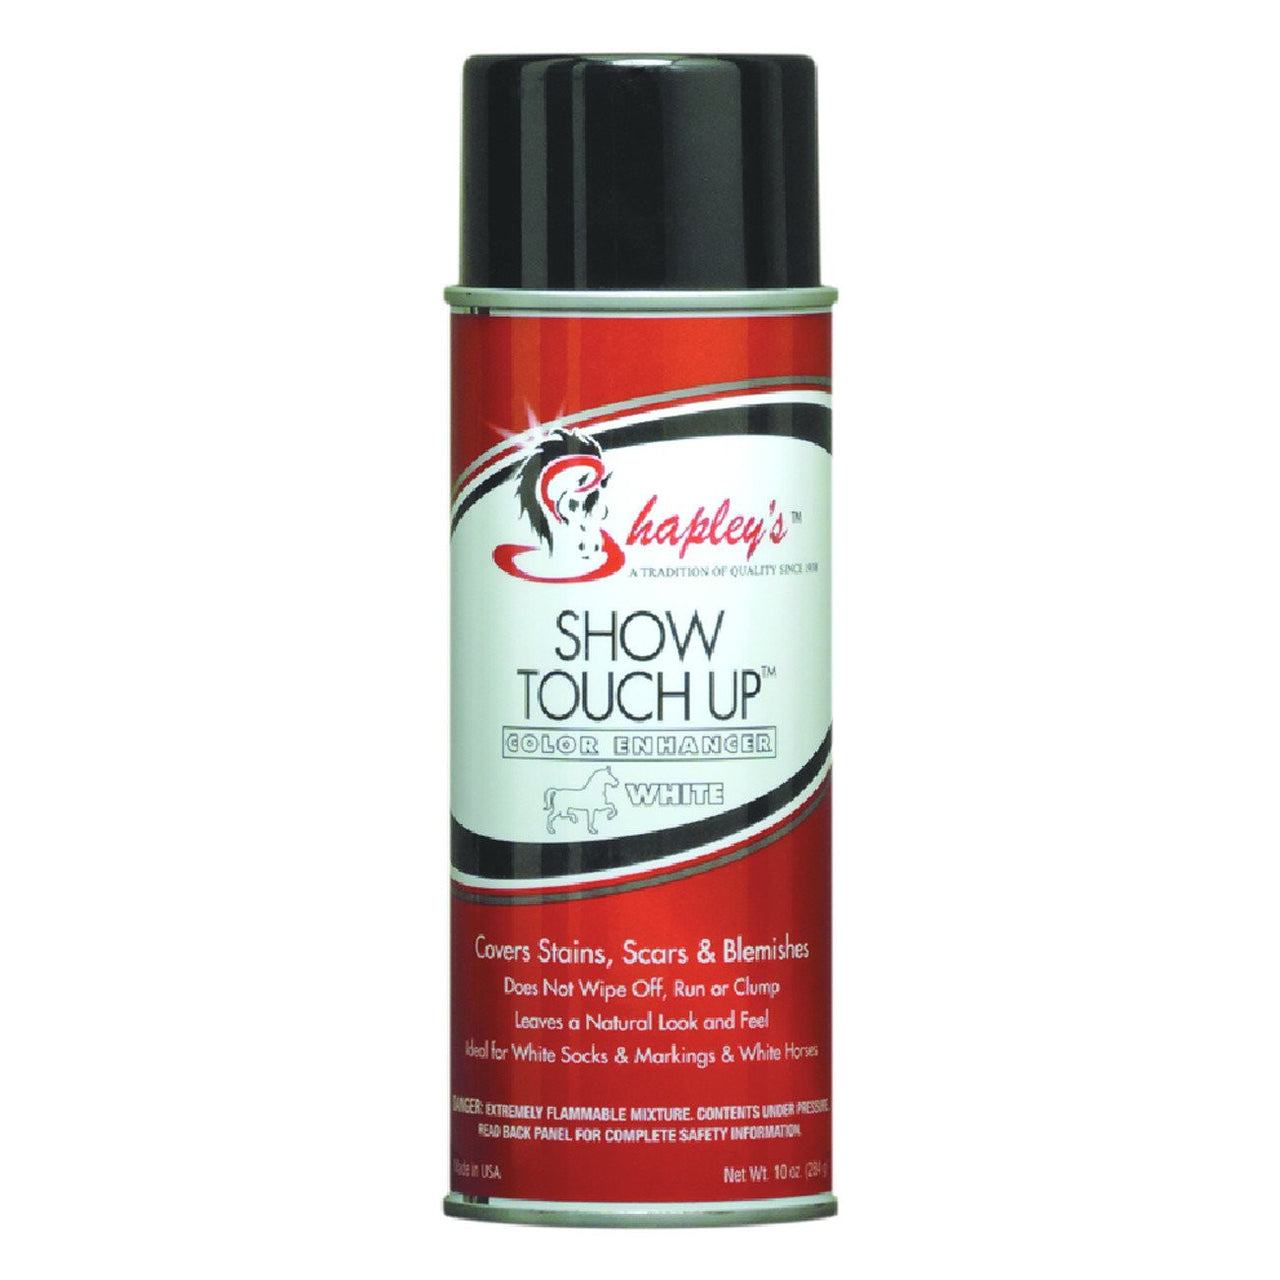 Shapleys Show Touch Up 295Ml Aerosol Spray White - Equine Care Shapleys - Canada